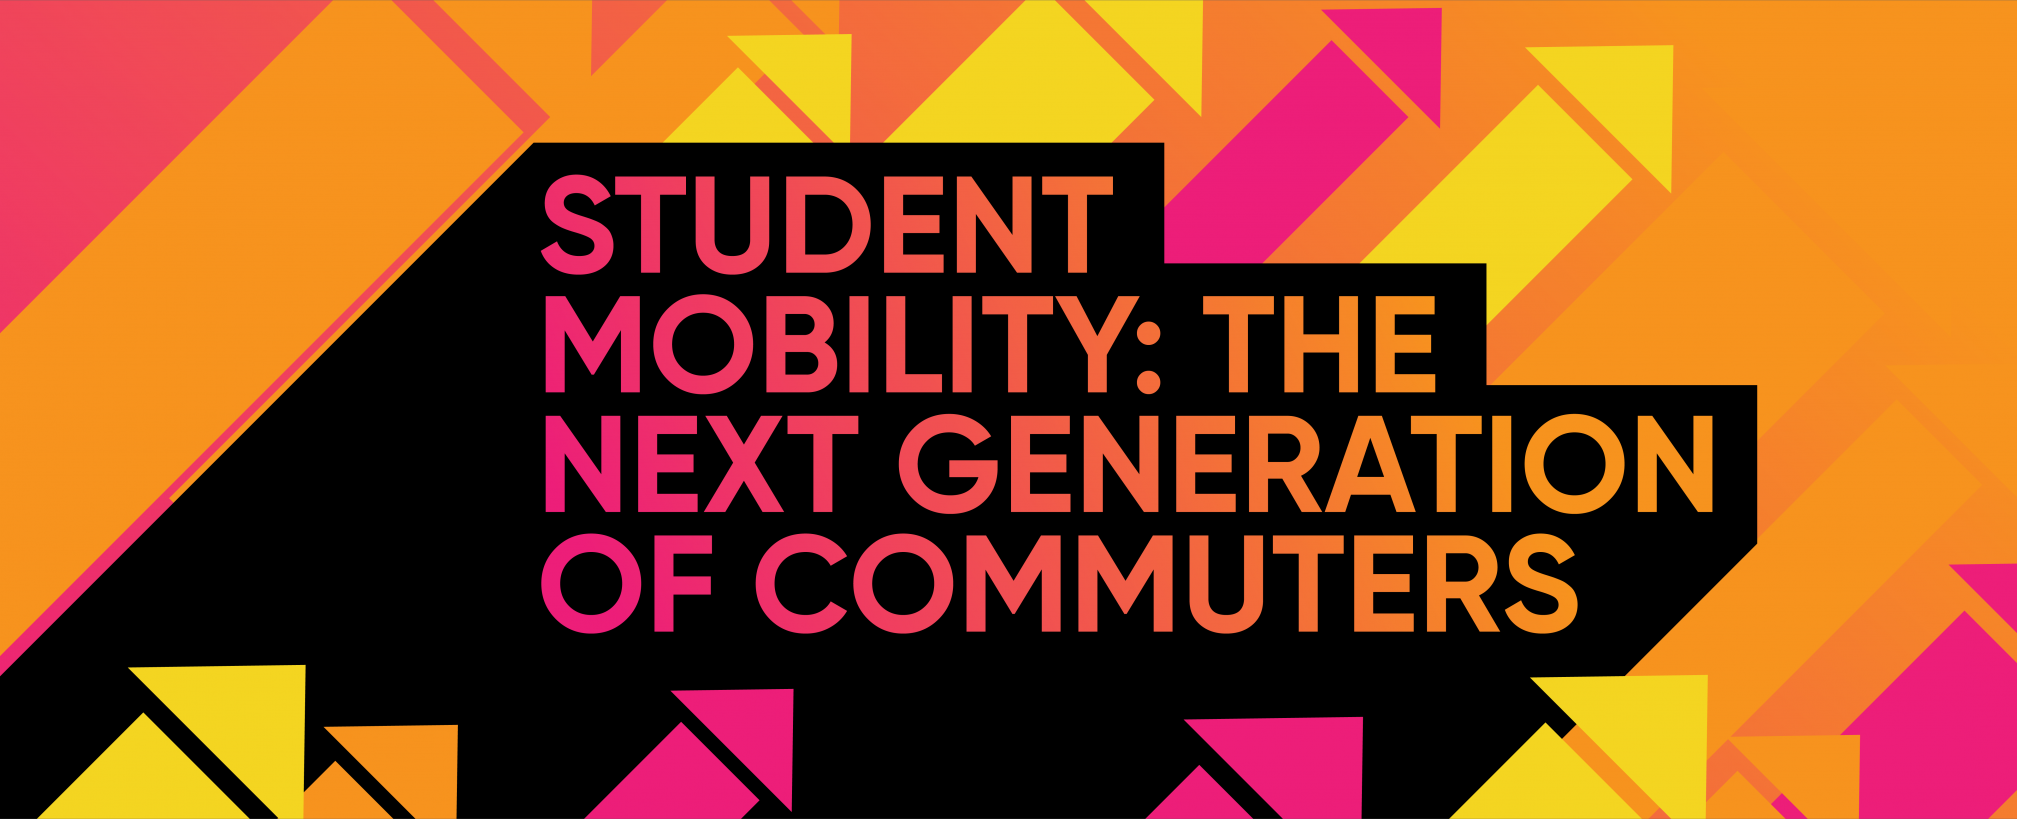 STUDENT MOBILITY: THE NEXT GENERATION OF COMMUTERS